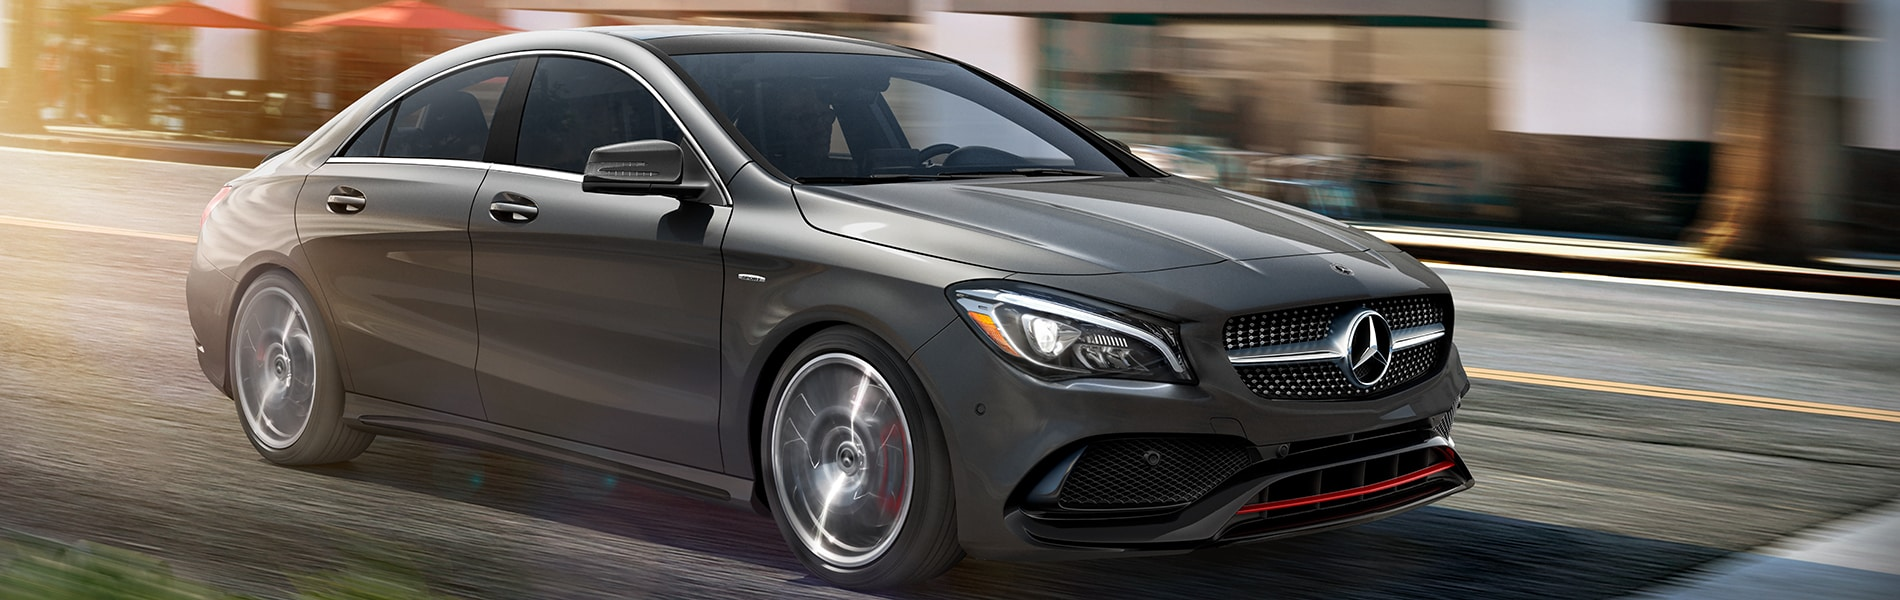 Mercedes Benz CLA 250 Exterior Vehicle Features